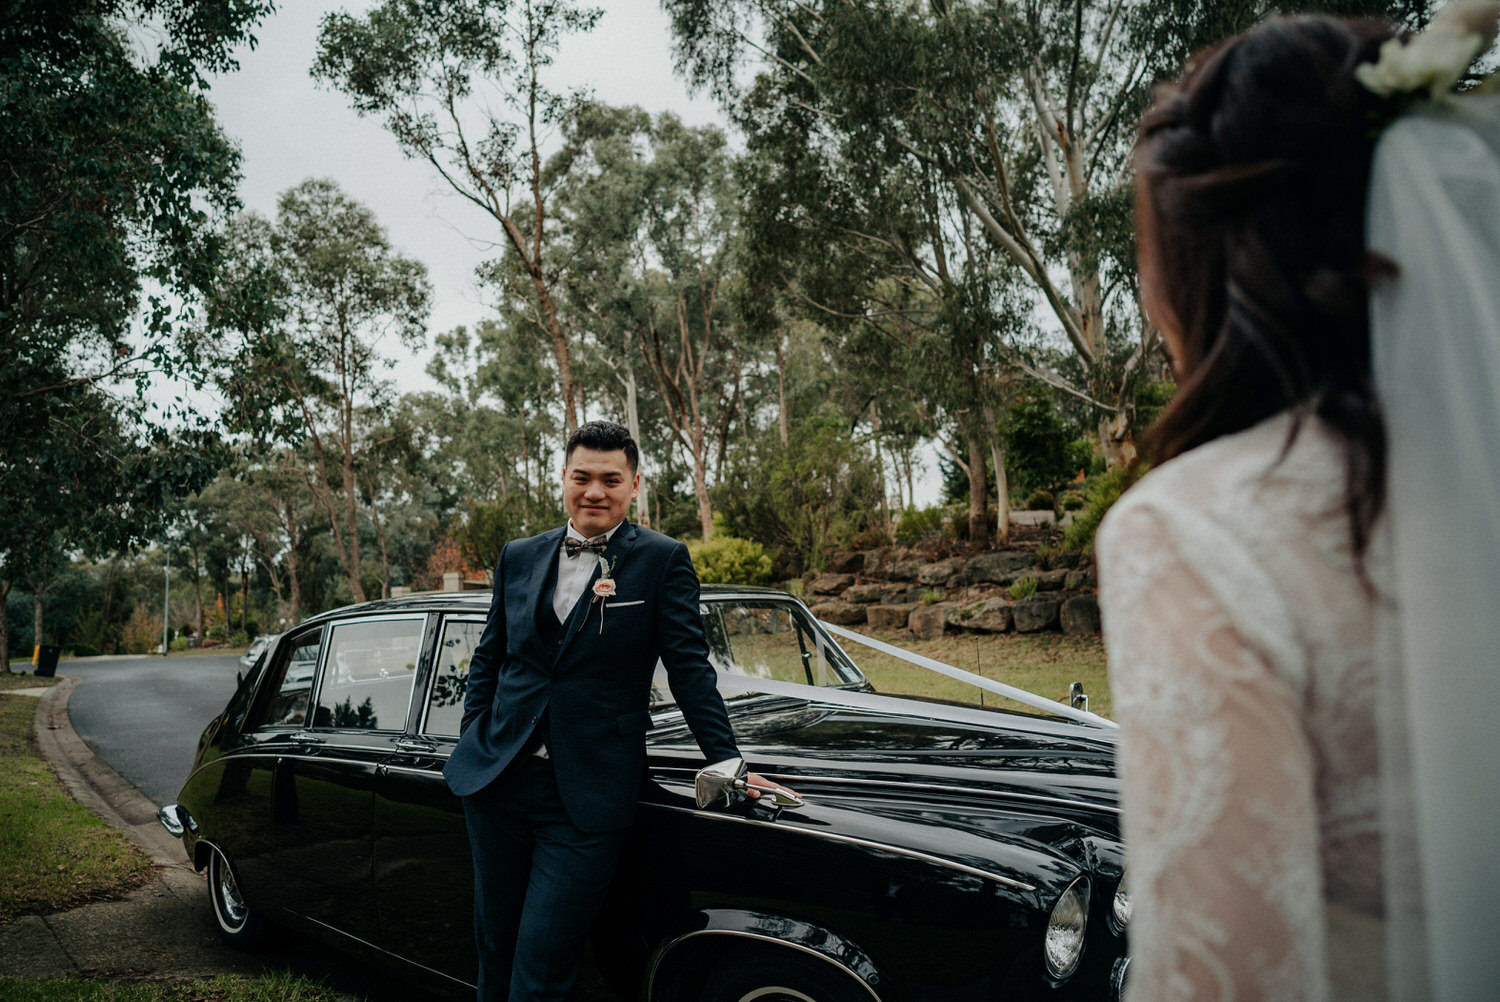 033-melbourne-wedding-bride-and-groom-andrew-hardy-ceremony.jpg